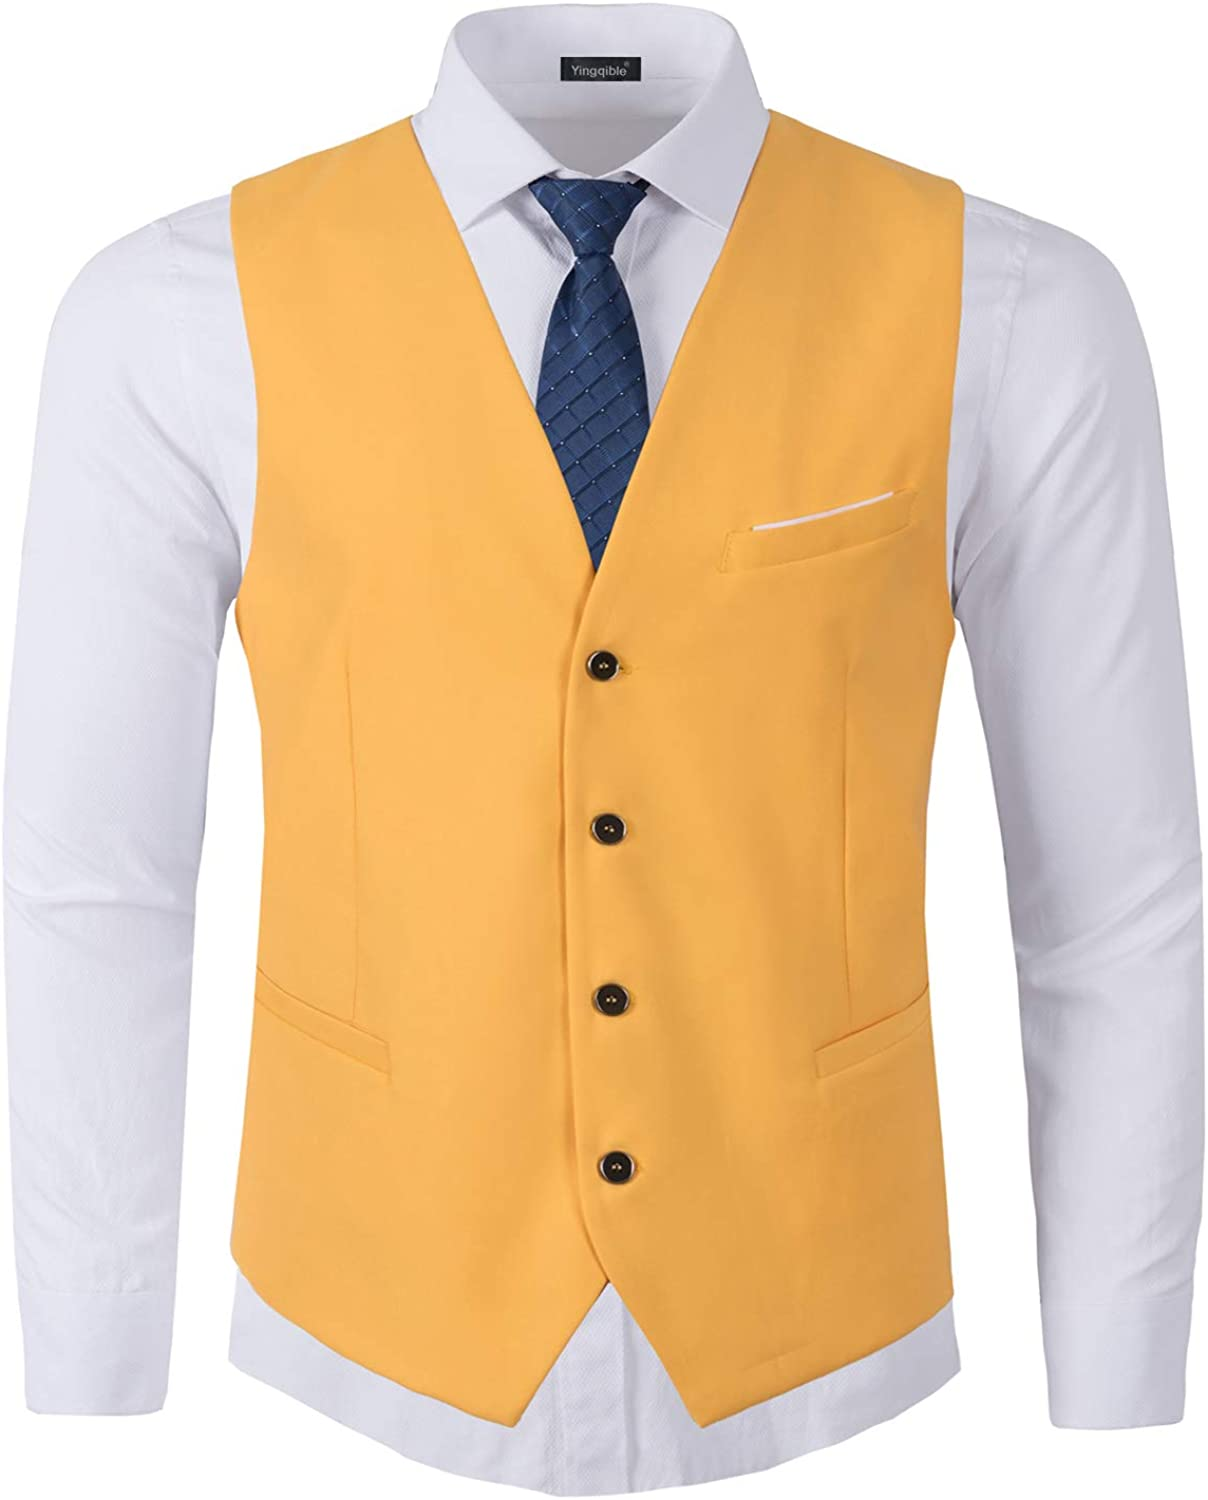 Yingqible Mens Suits Waistcoats Casual Slim Fit Skinny Wedding Dress Vest Sleeveless Tops Business Suit Gilet